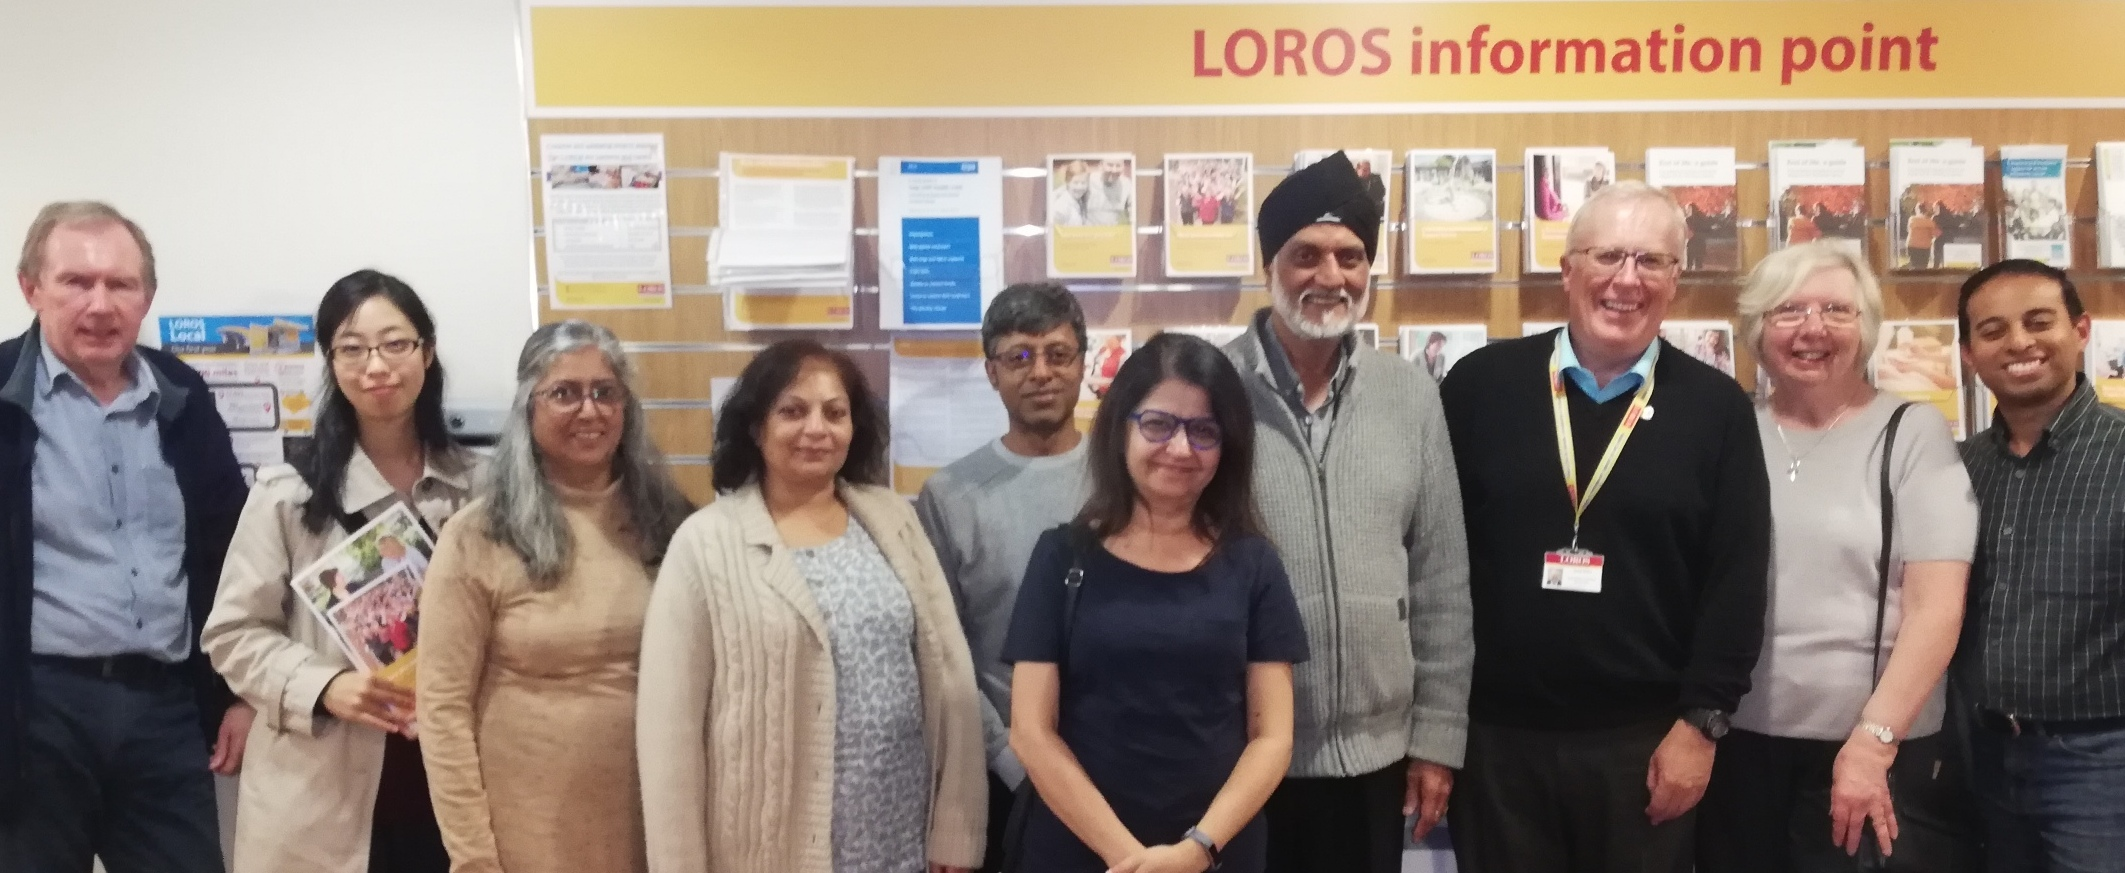 LOROS visitors with their guide, Adrian Walker